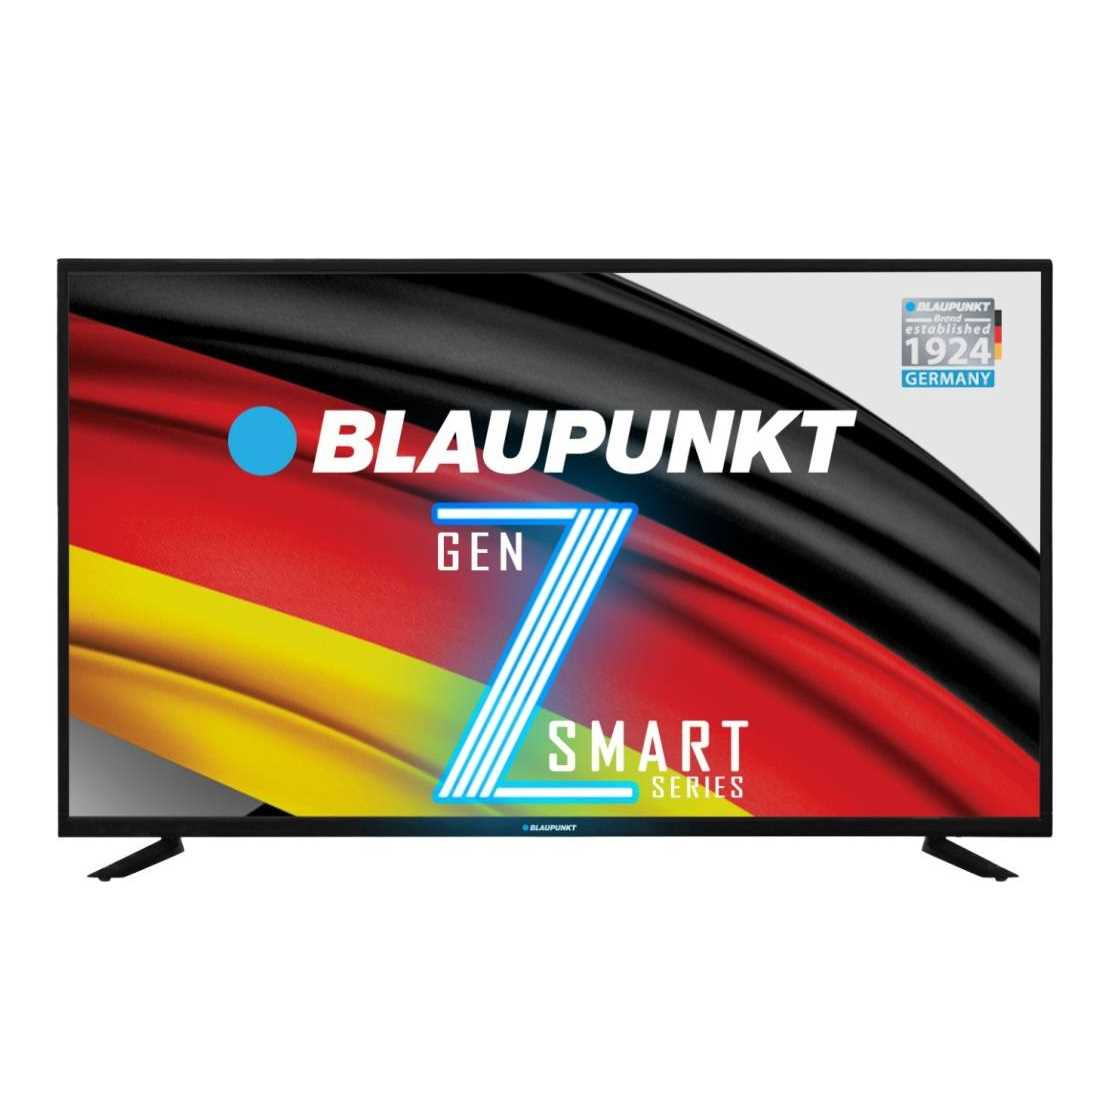 Blaupunkt GenZ Smart BLA49BS570 49 Inch Full HD Smart LED Television